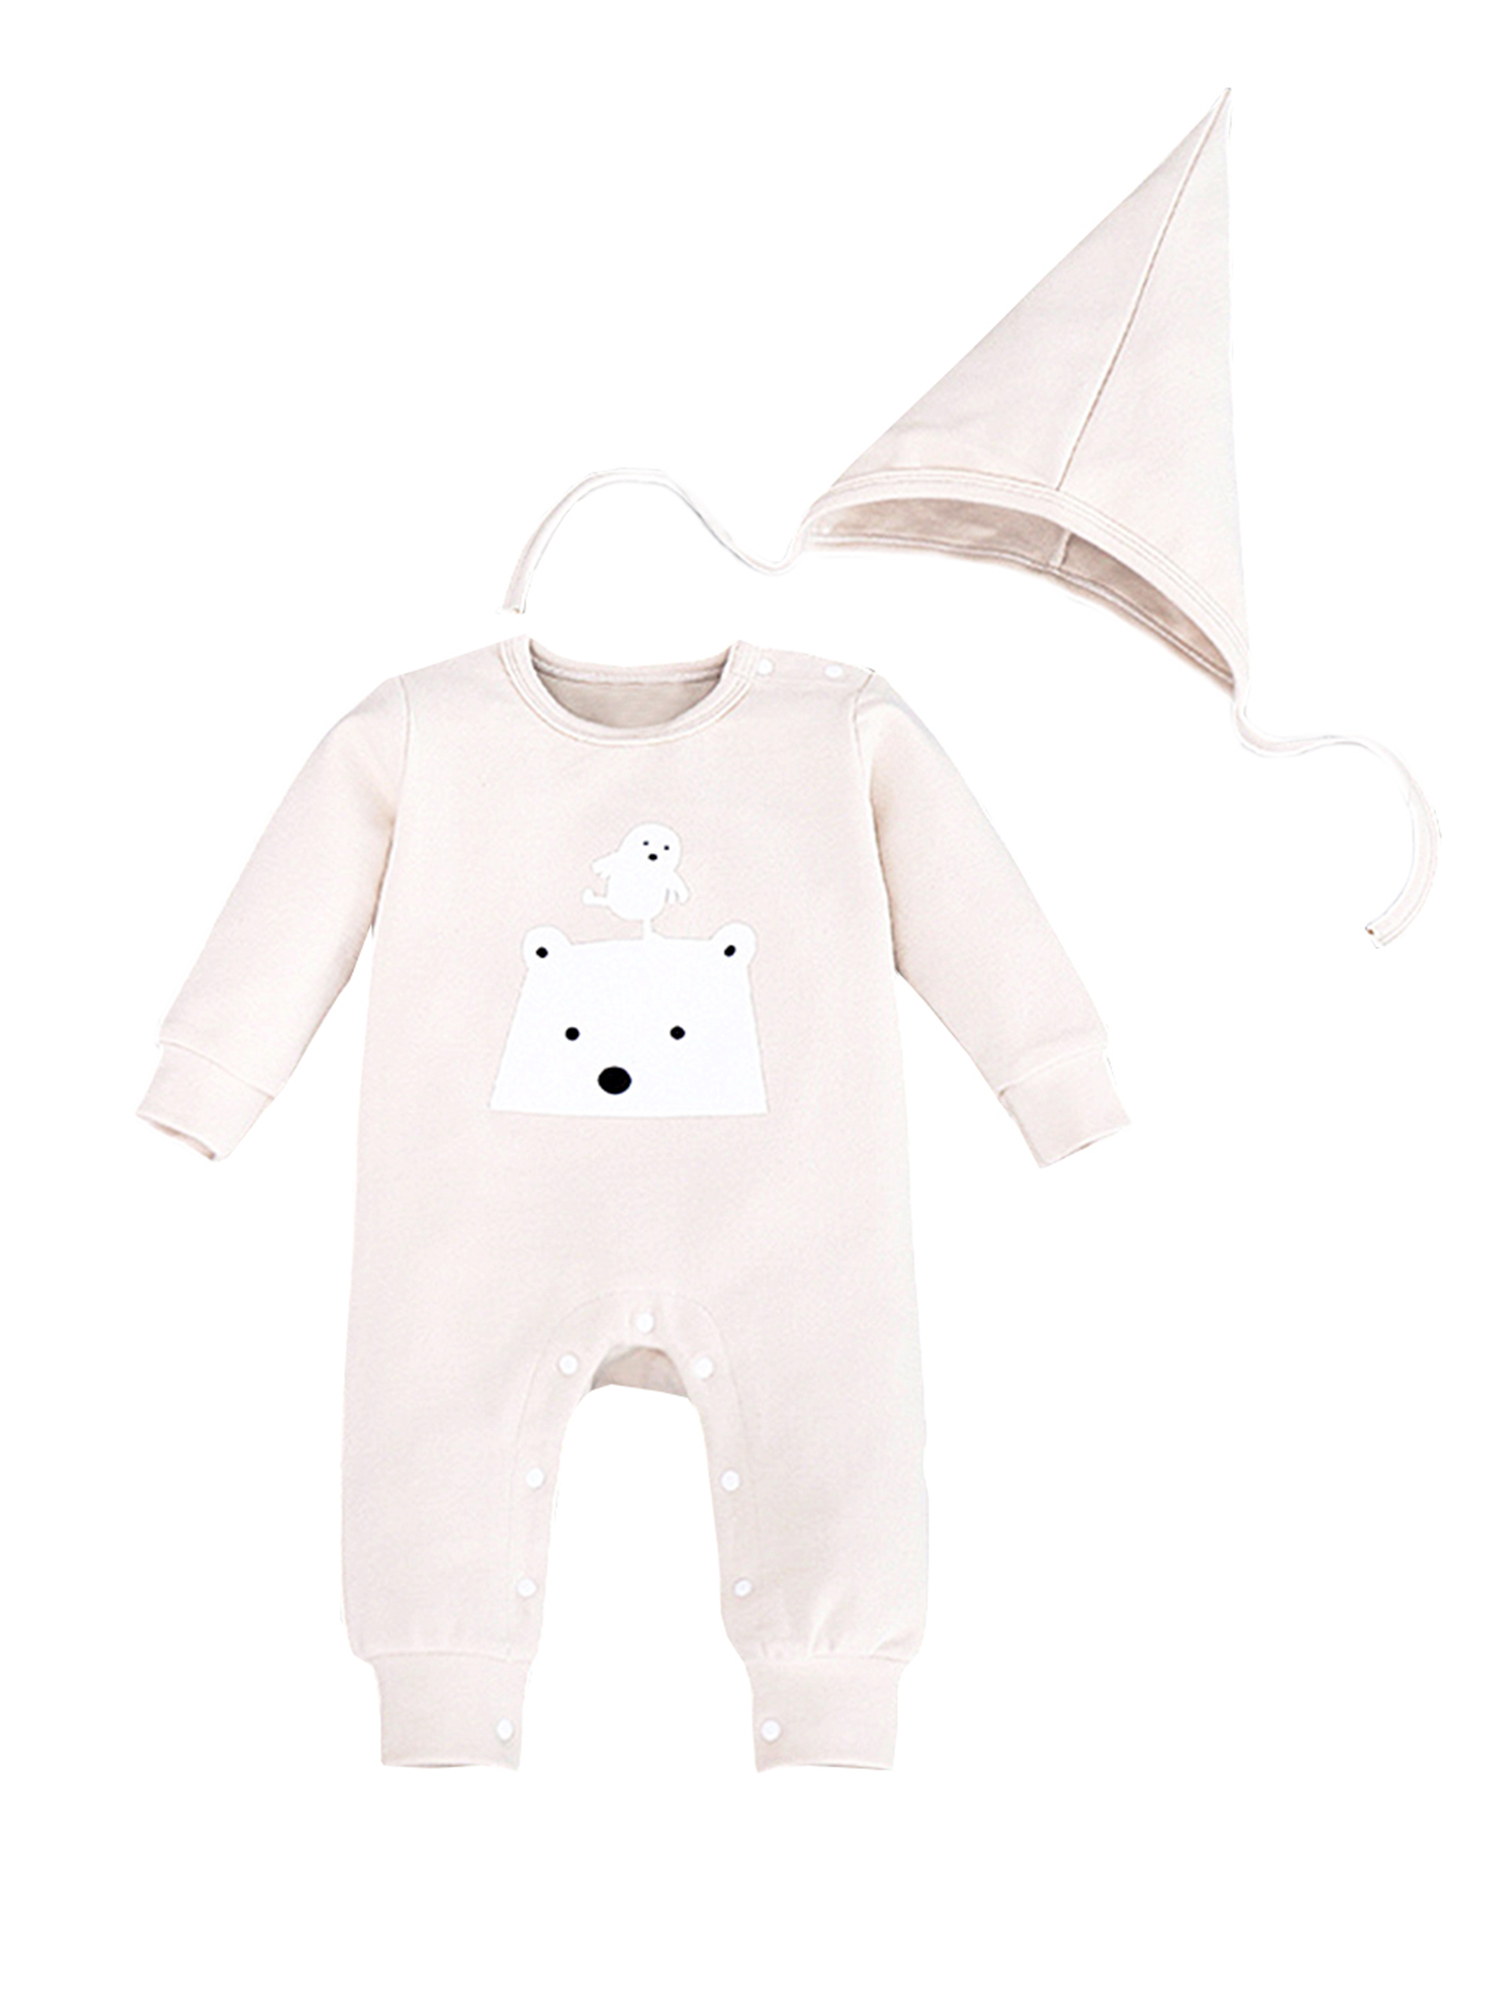 StylesILove Polar Bear Baby Coverall Romper and Hat 2-piece (6-12 Months, Black)